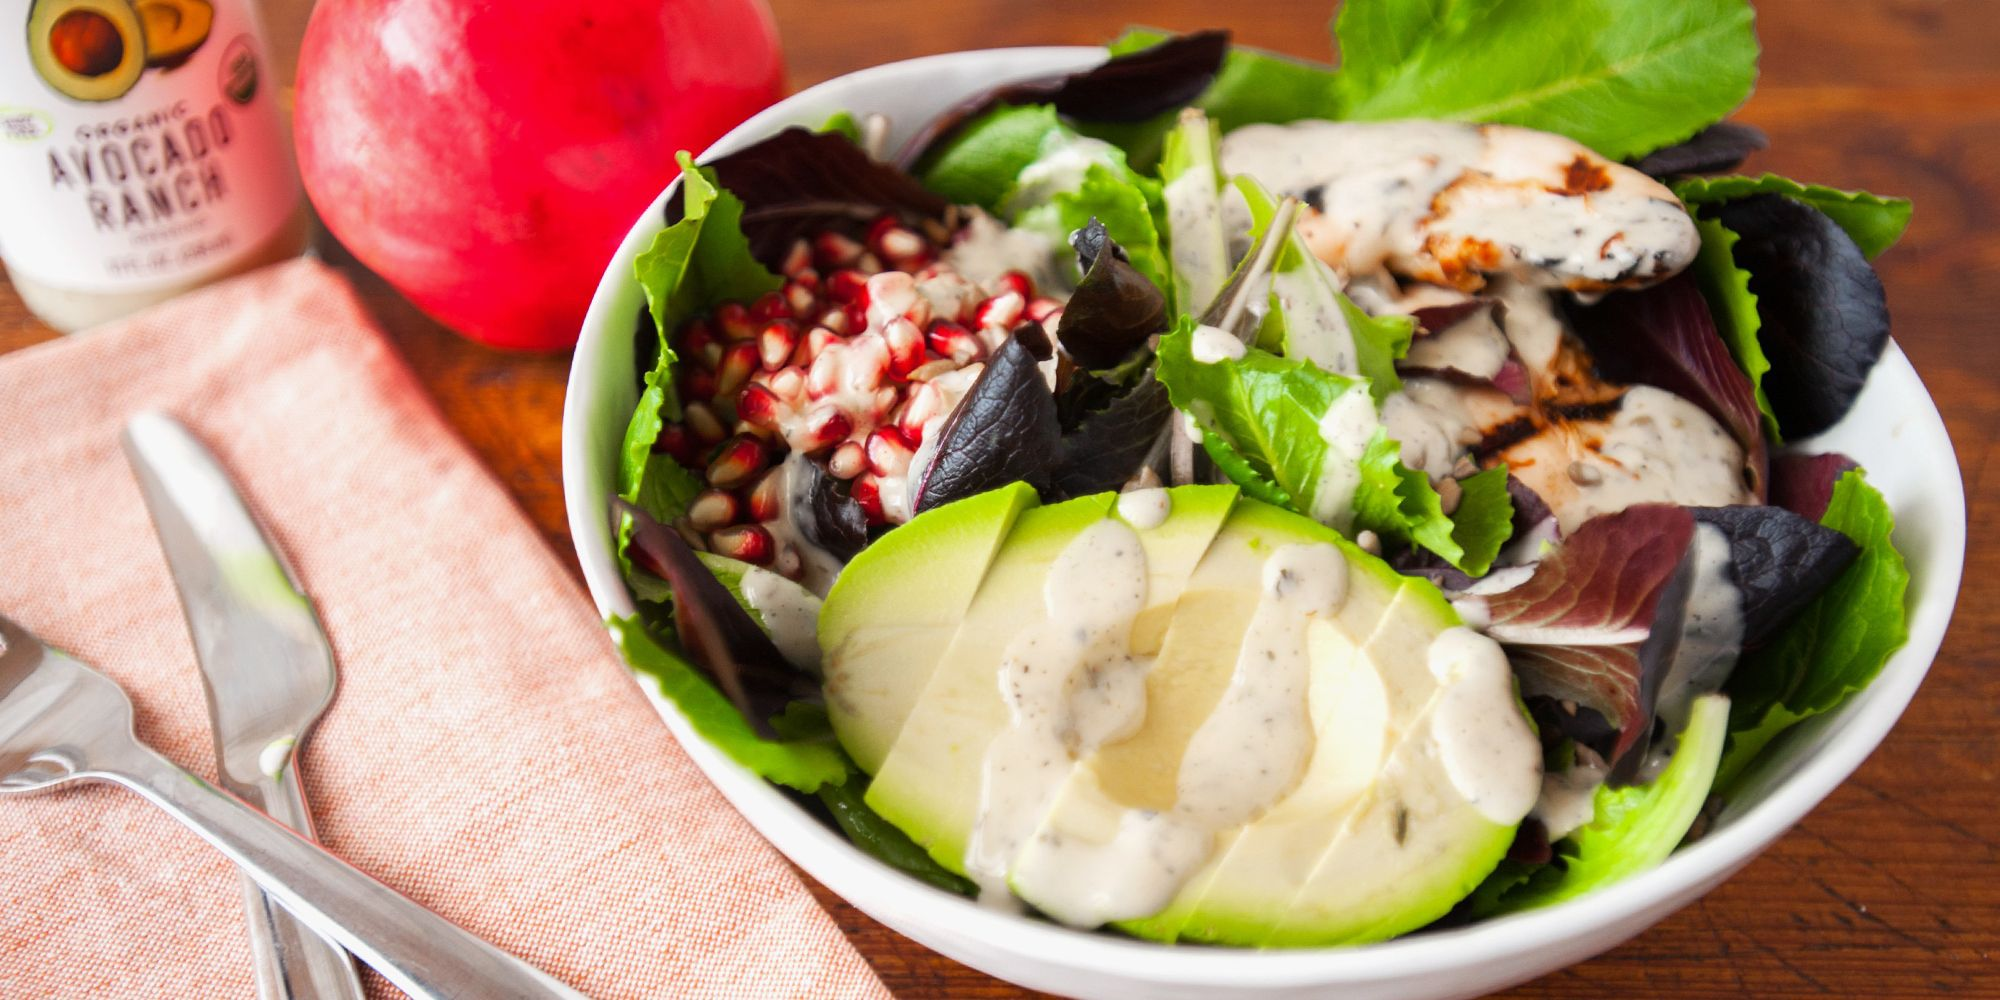 These Zesty Salad Dressings Will Give Your Boring Lunch New Life